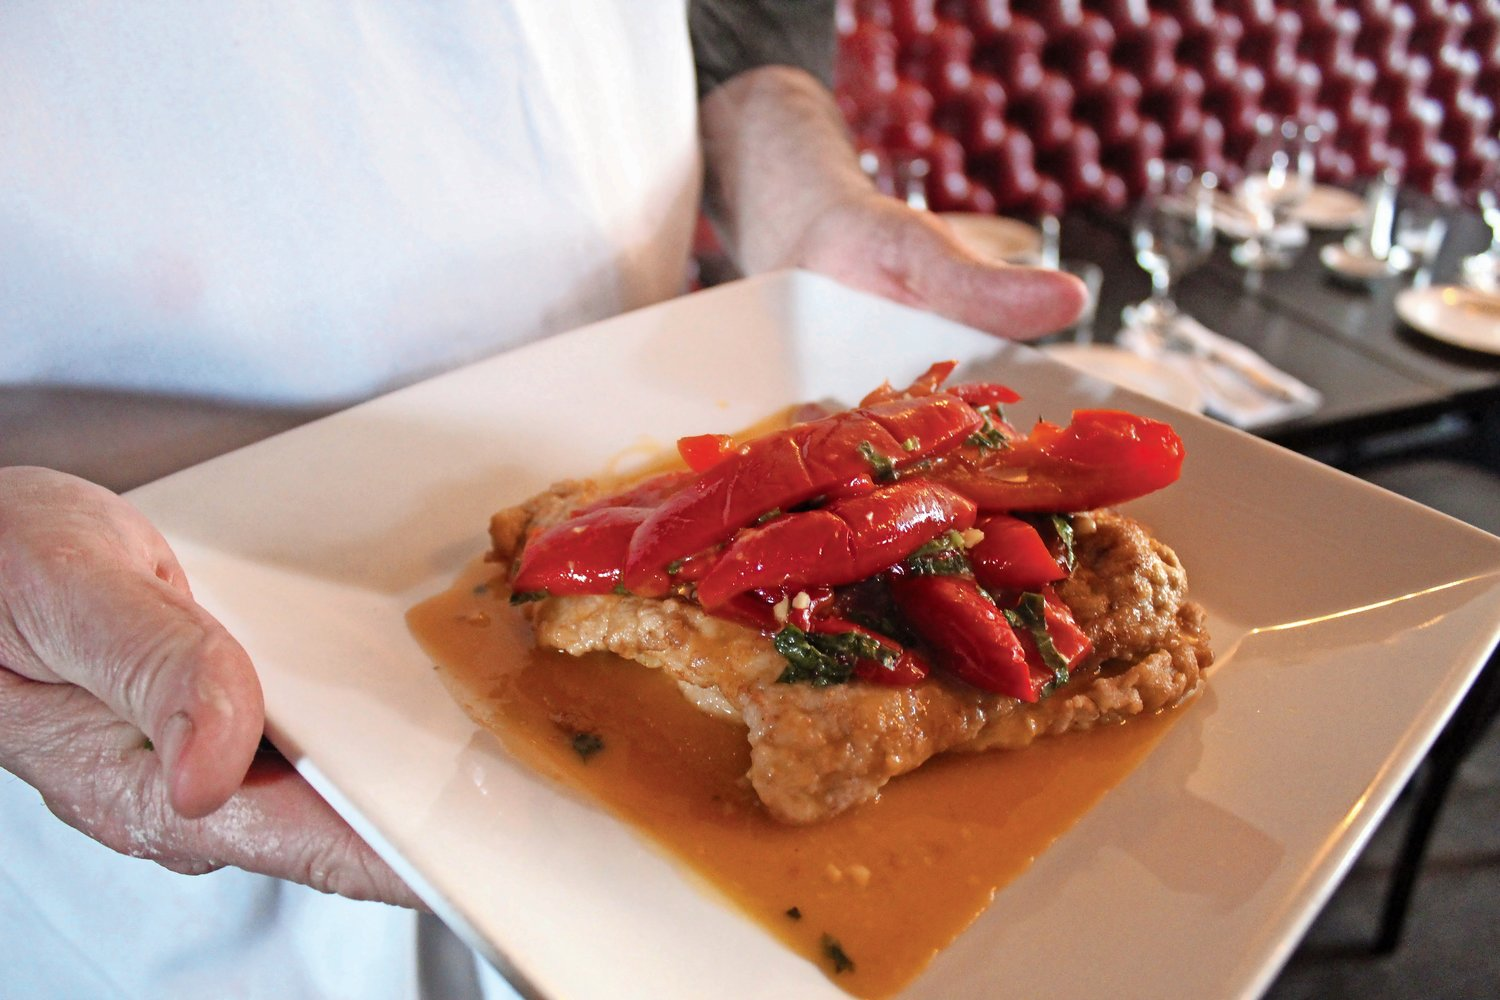 Cicinelli held a hearty plate of veal scaloppini draped with vinegar peppers.